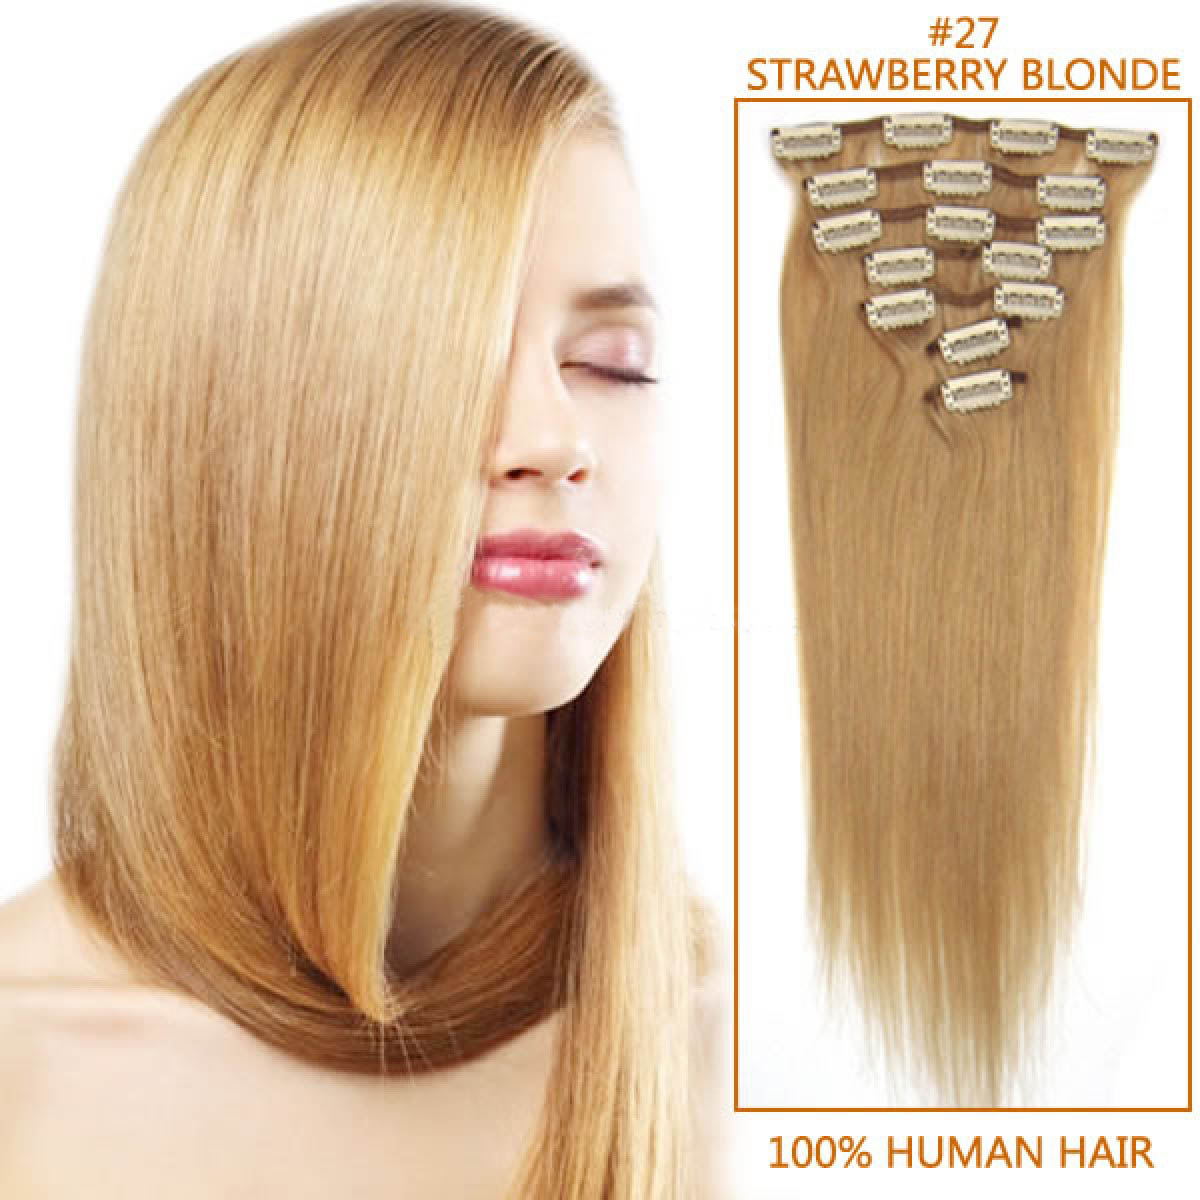 26 Inch 27 Strawberry Blonde Clip In Remy Human Hair Extensions 12pcs